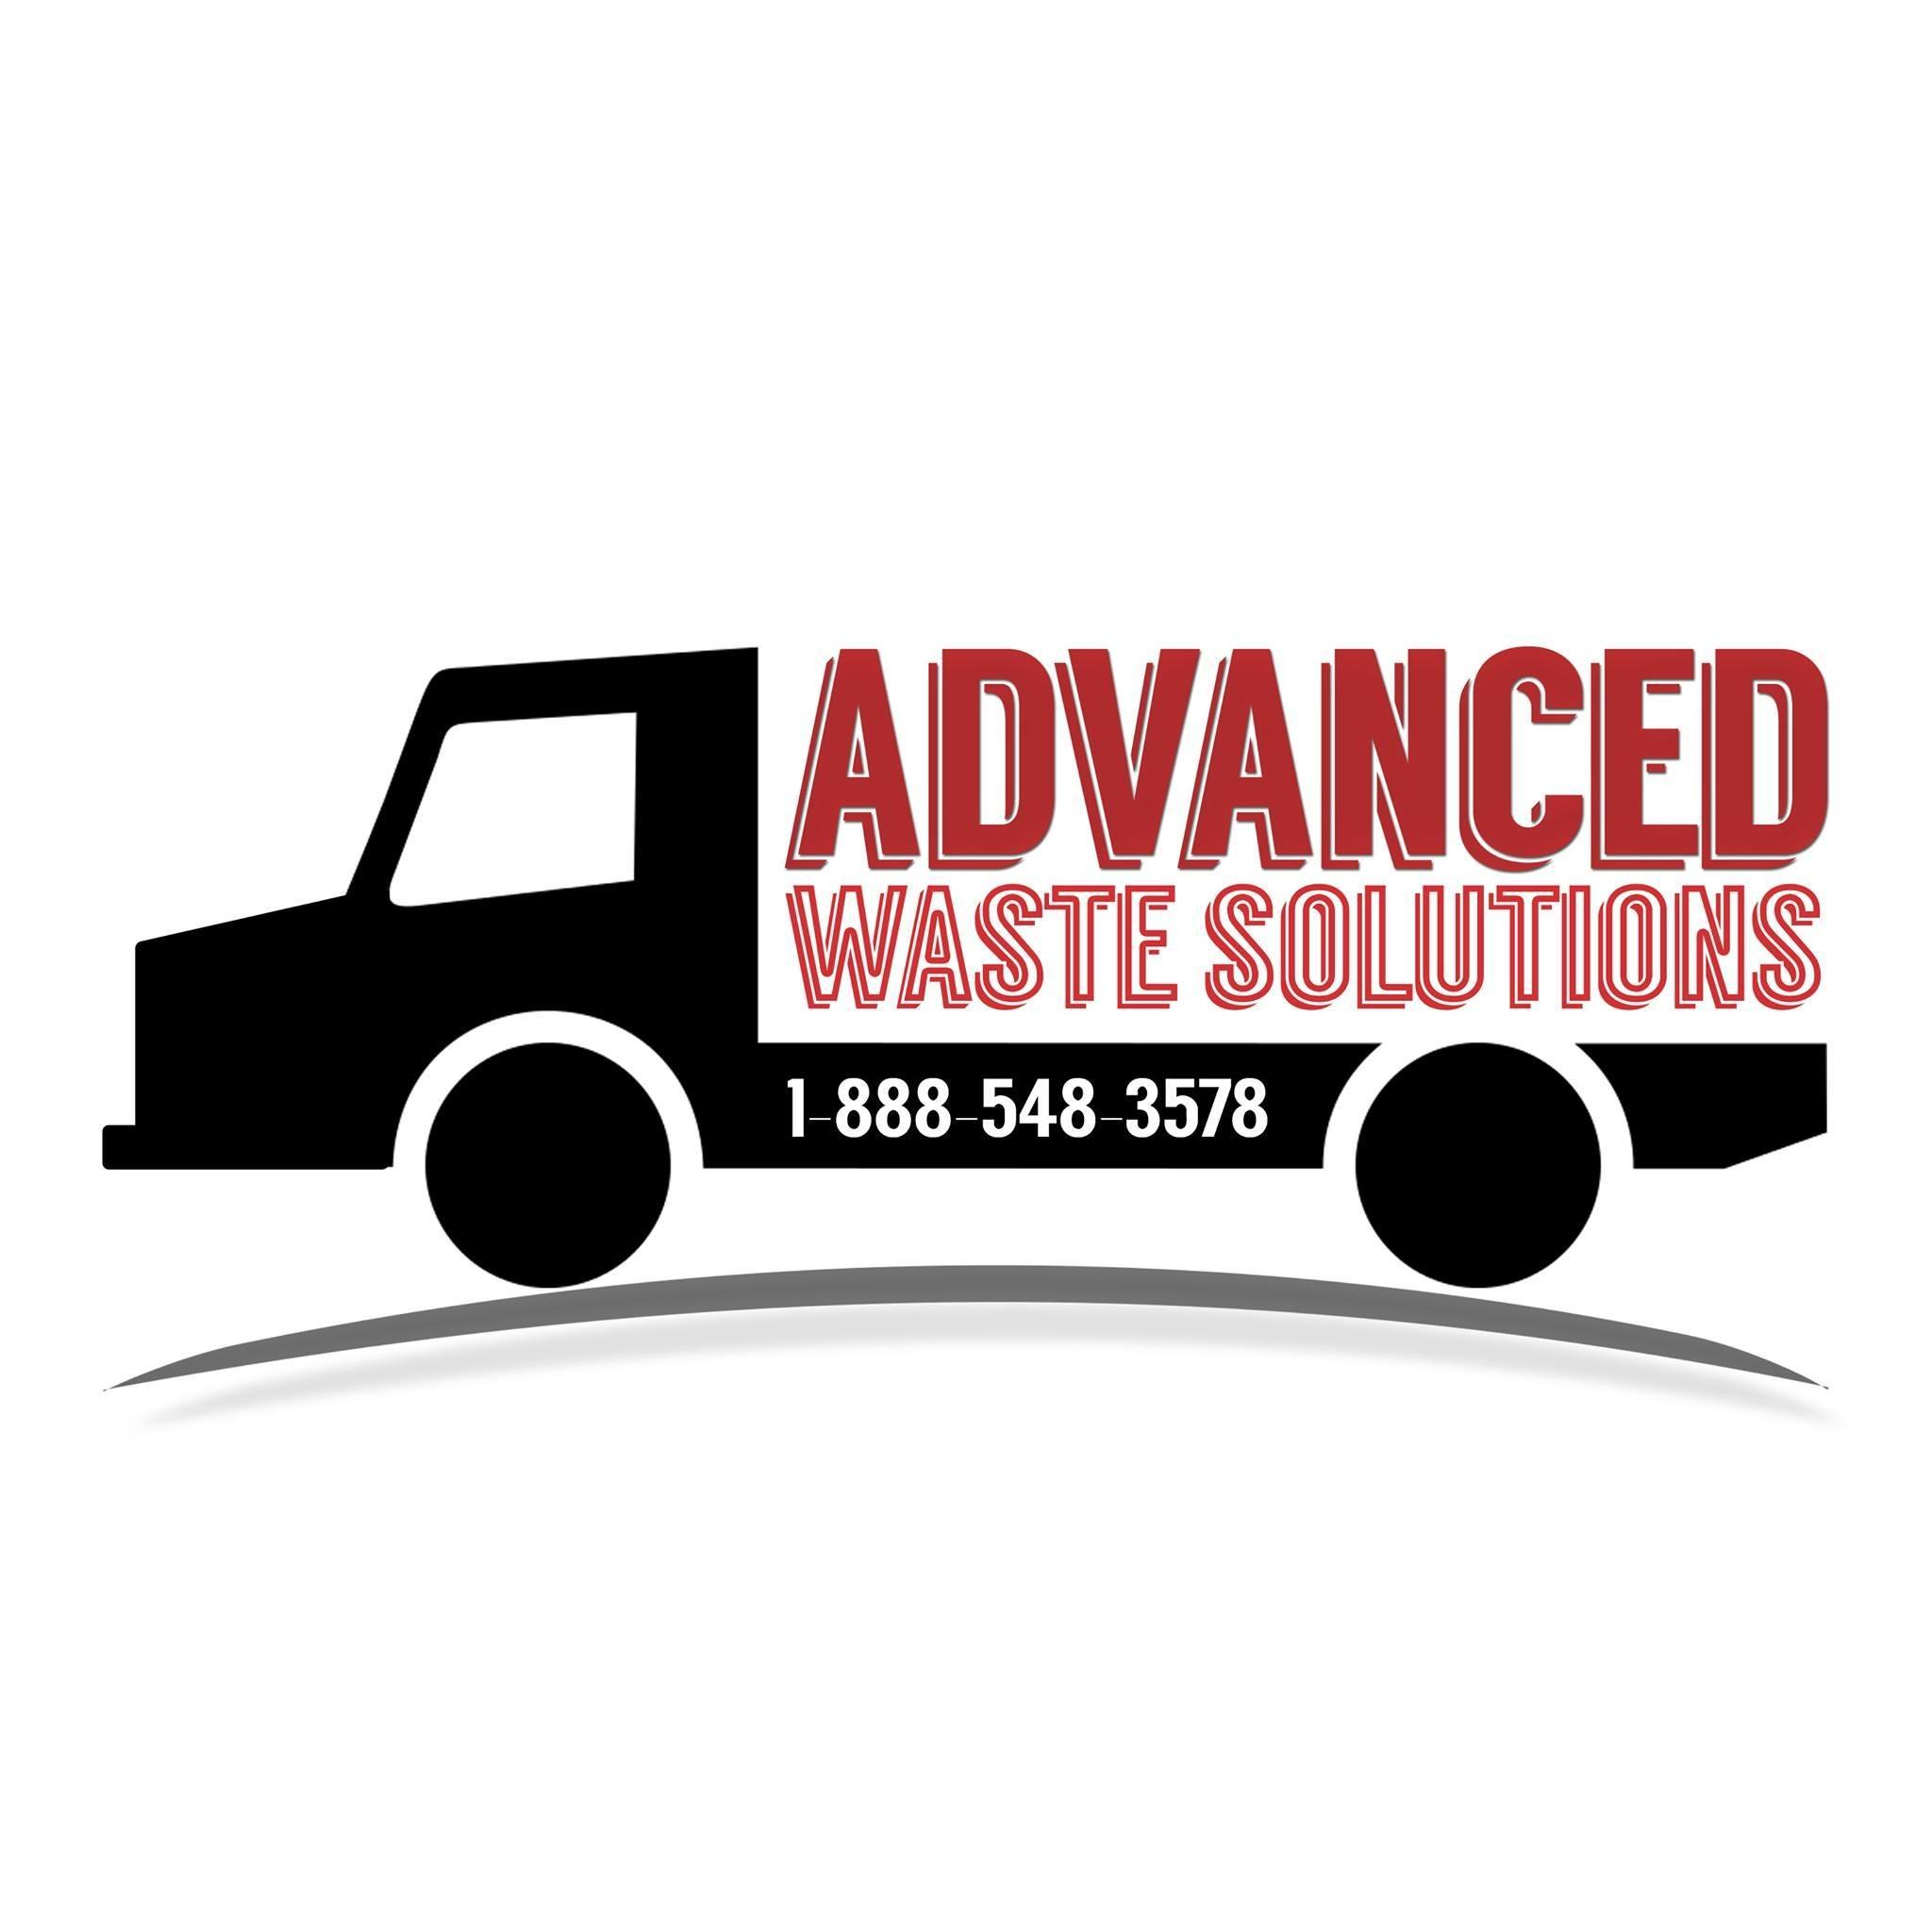 Advance Waste Solutions image 8